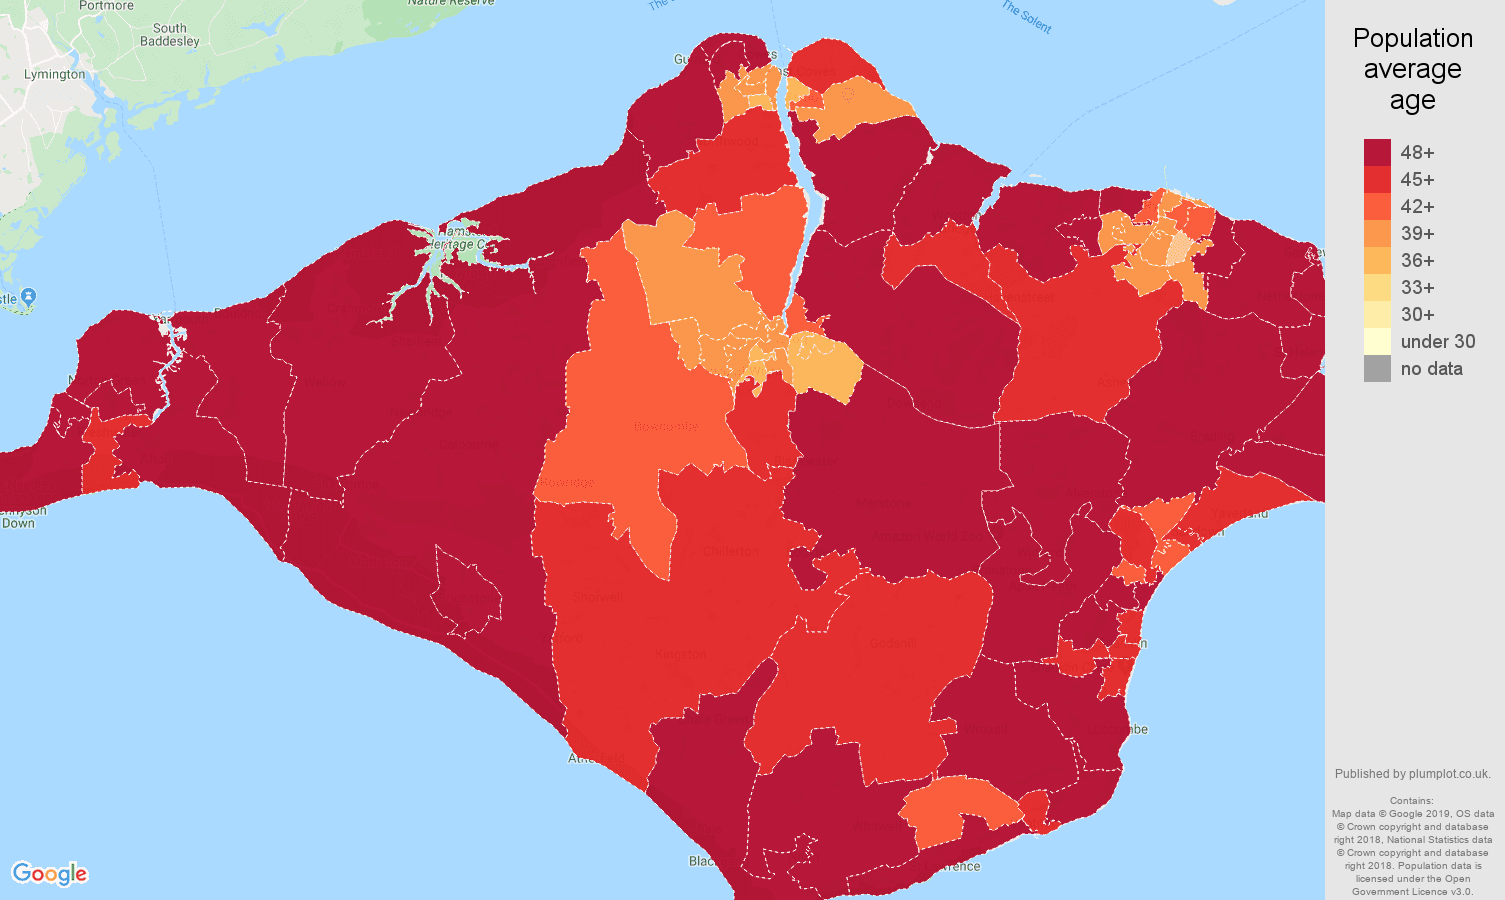 Isle of Wight population average age map